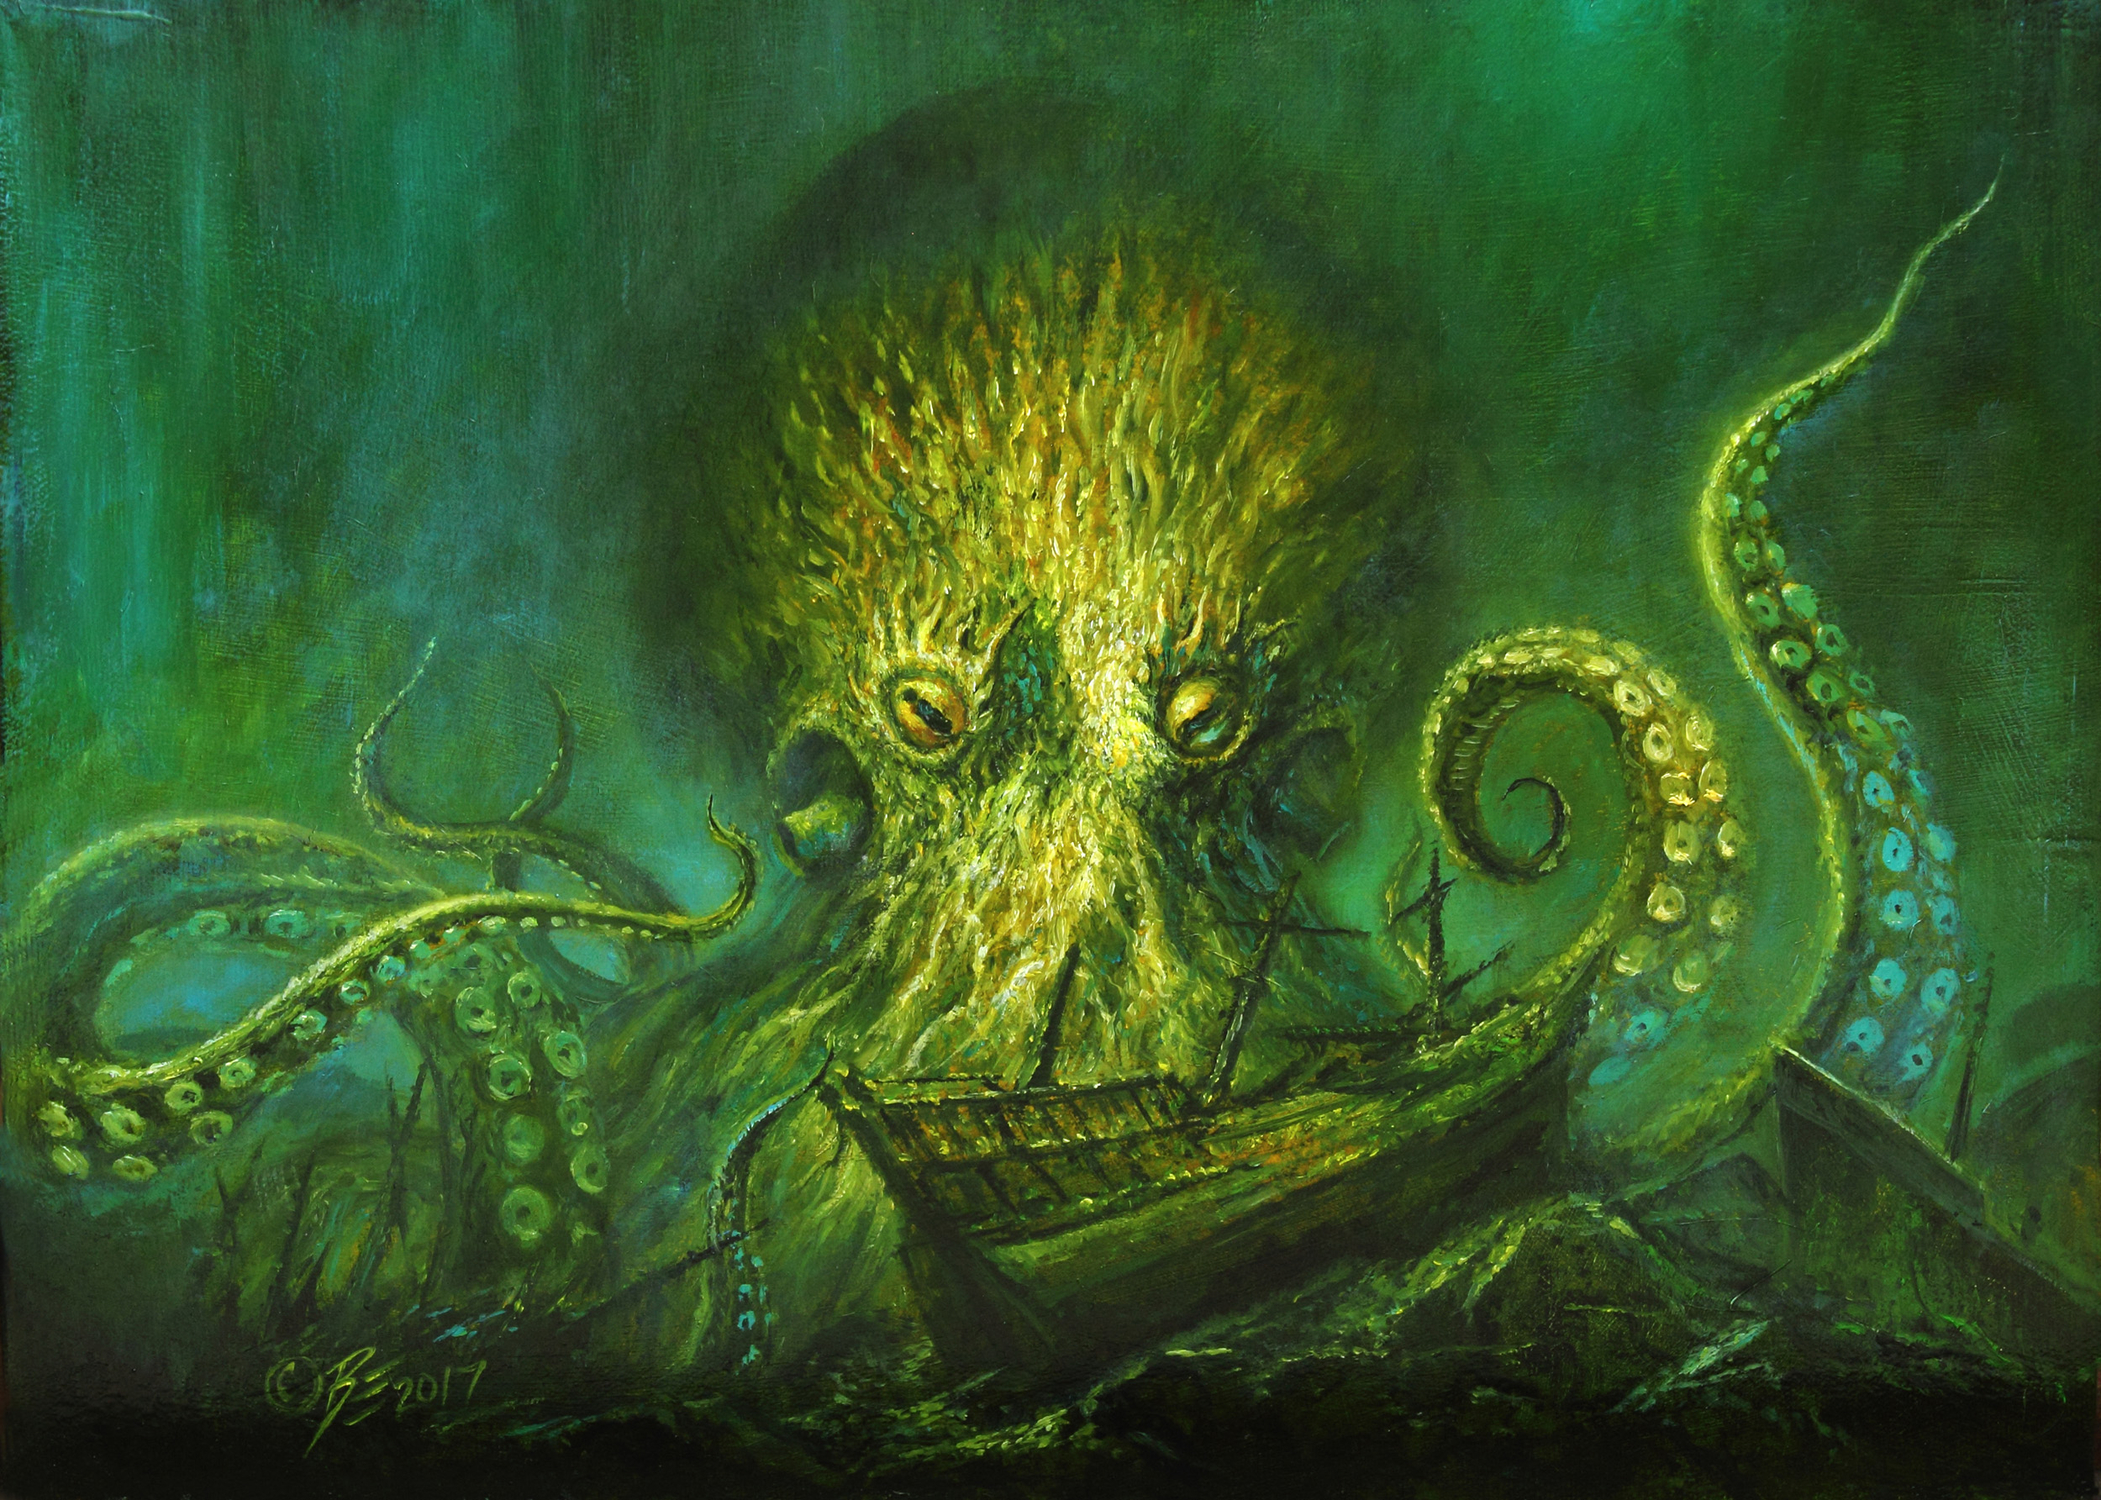 KRAKEN'S LAIR Artwork by Bob Eggleton